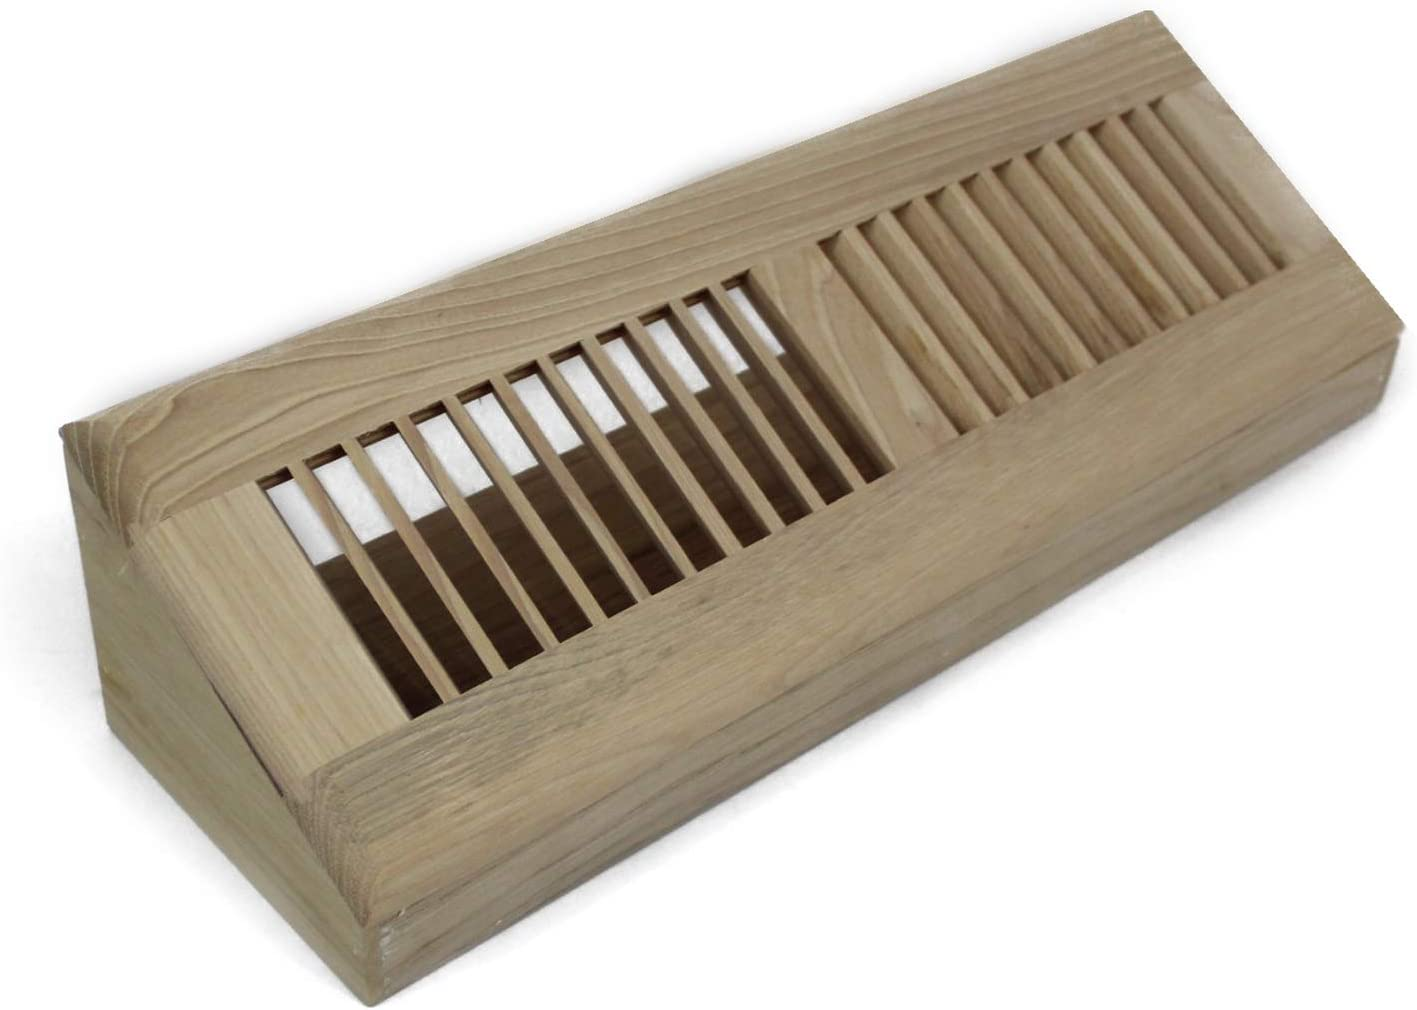 WELLAND 15 inch Hickory Hardwood Max 51% OFF Baseboard service Registe Diffuser Wall